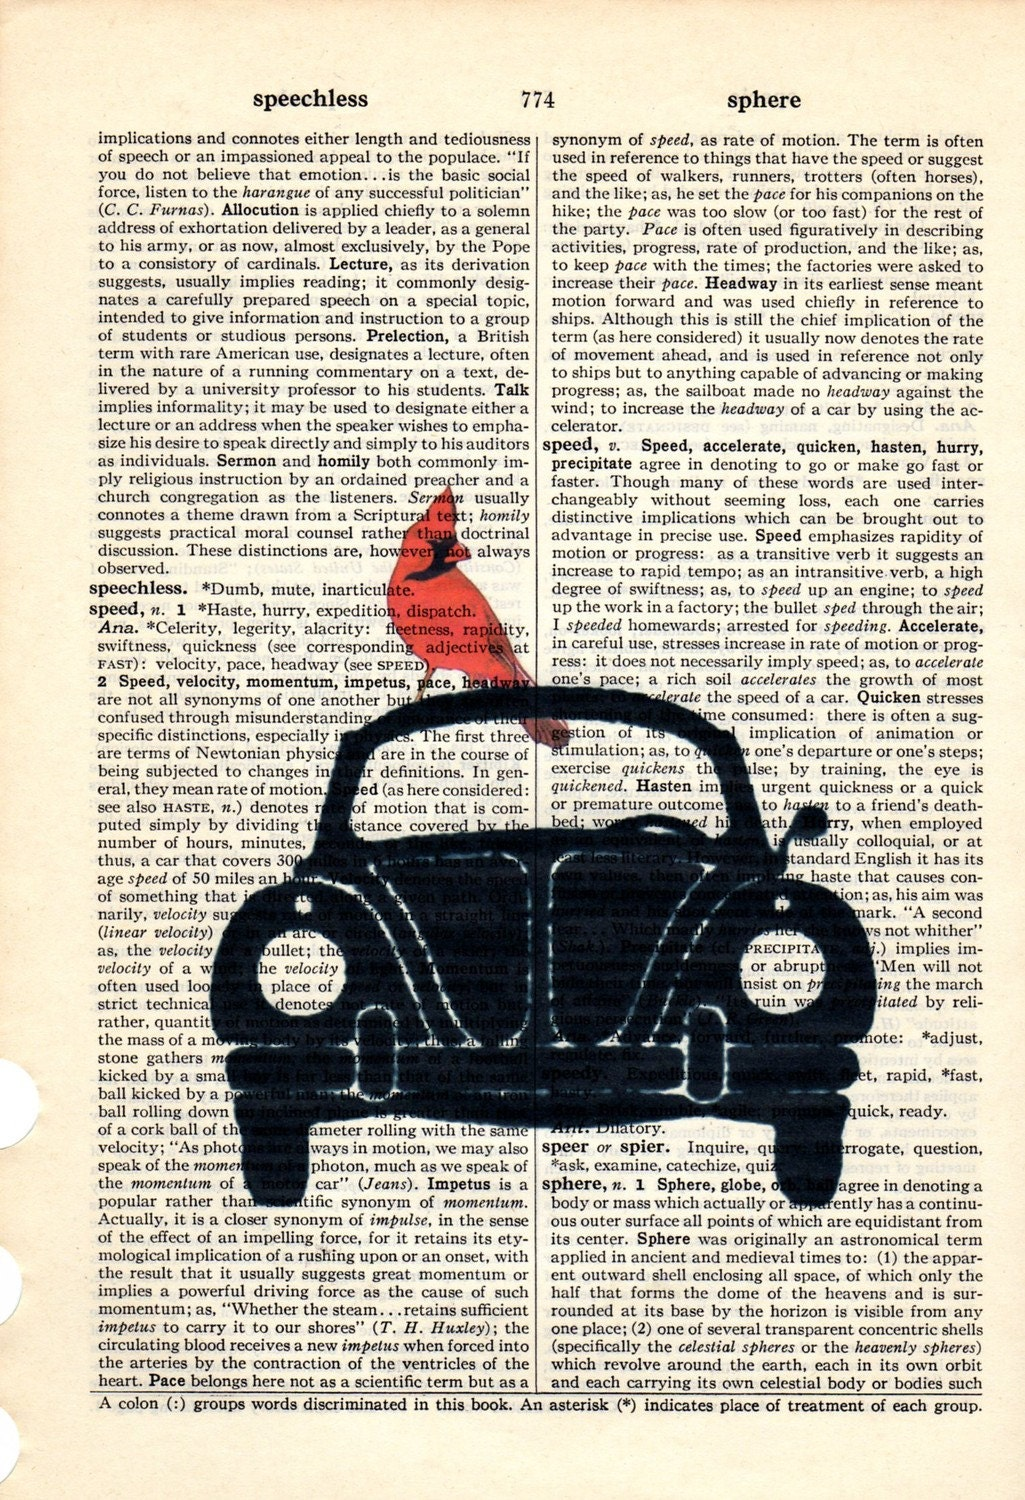 Ride a Bug VW Dictionary Book Page Collage